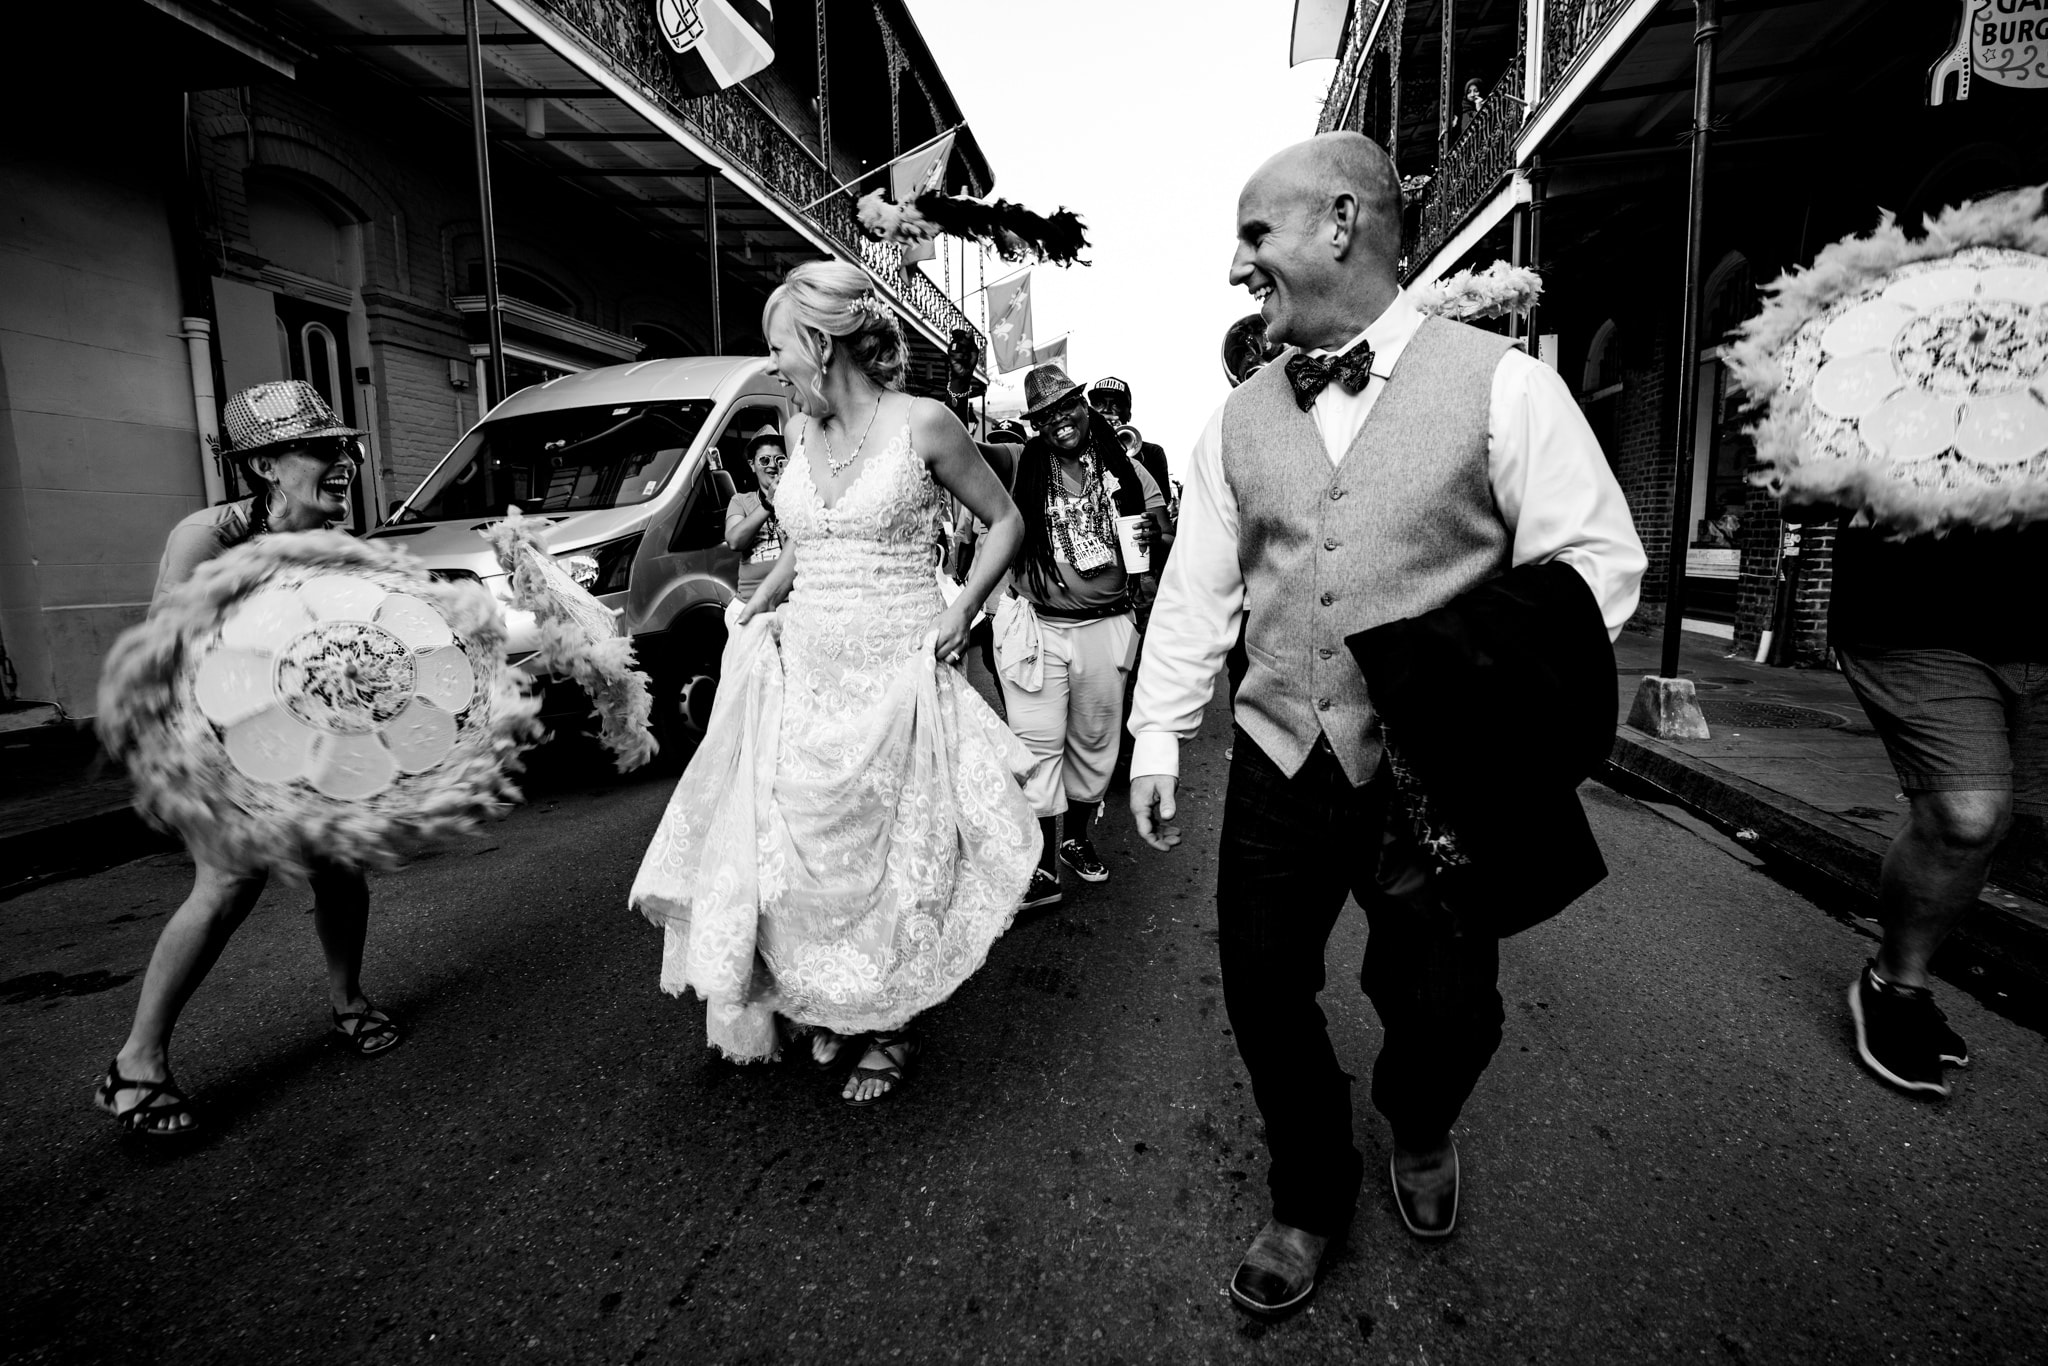 Bride and groom laughing in parade in New Orleans